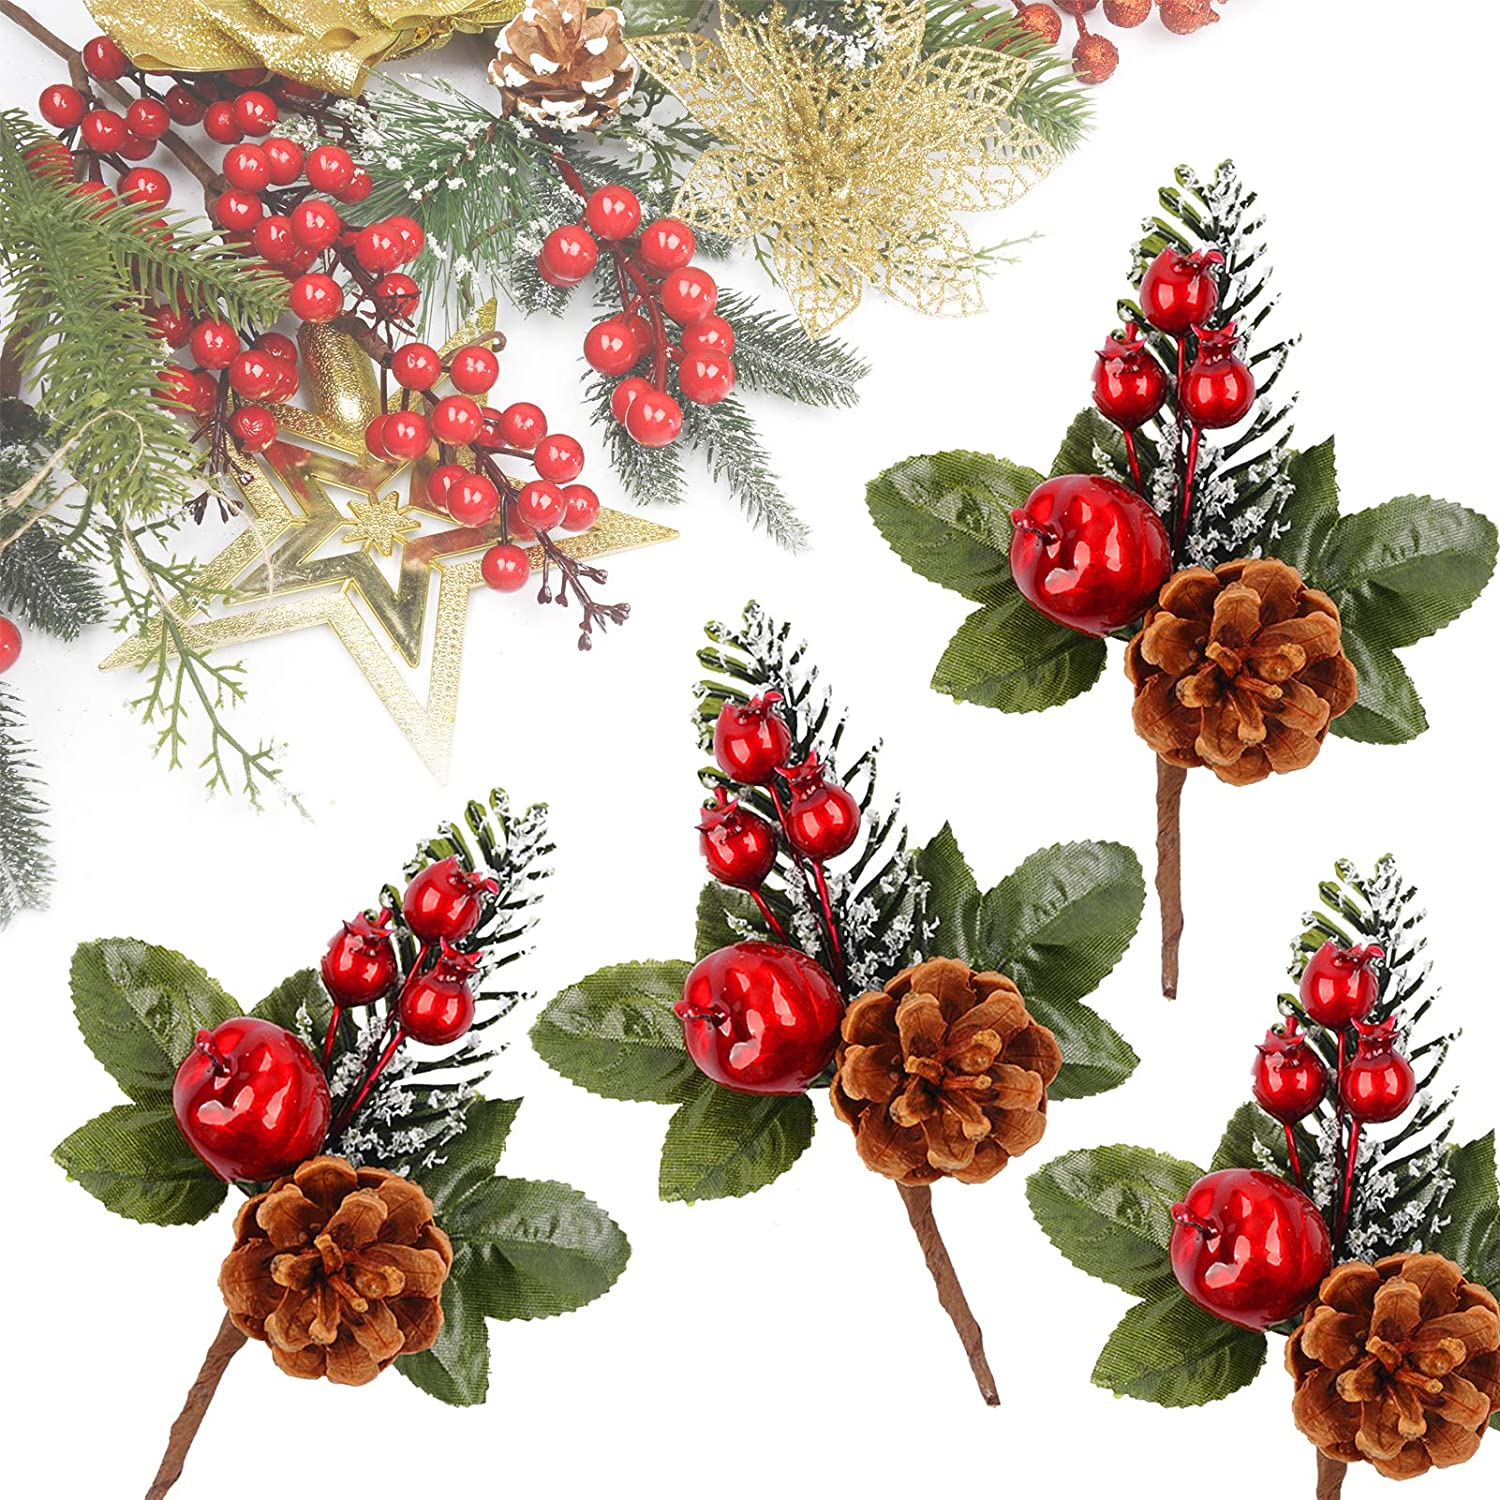 Meiliy 10pcs Artificial Pine Picks Pine Spray Floral Stems Red Berry Picks for Wedding Garden Christmas Tree DIY Craft Decorations